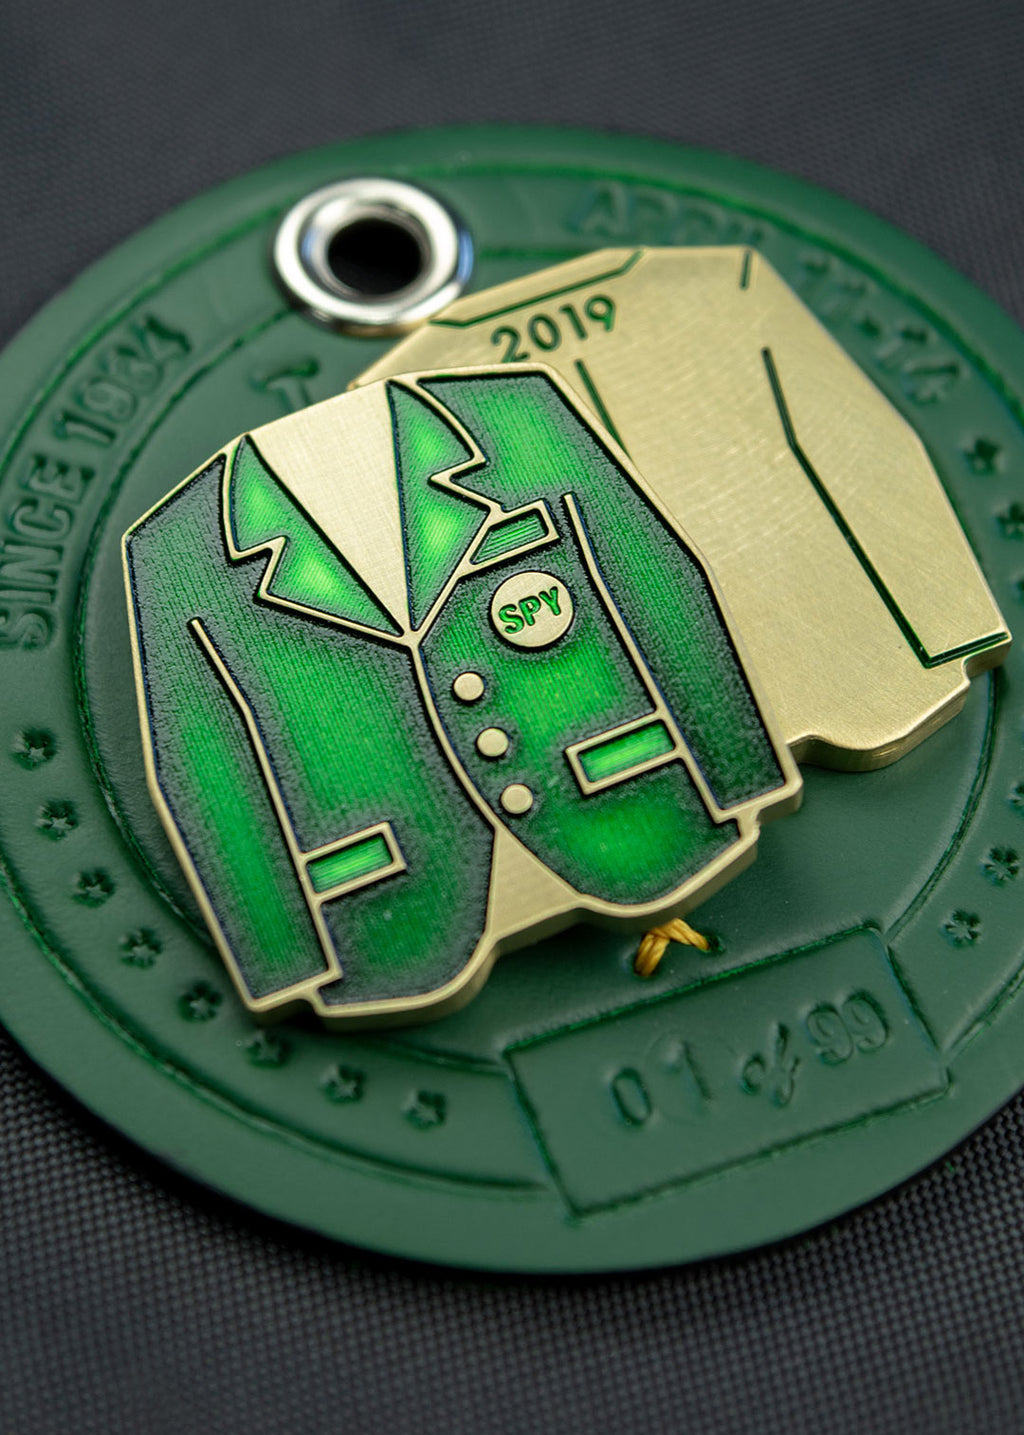 MGS 2019 Spy Ball Marker